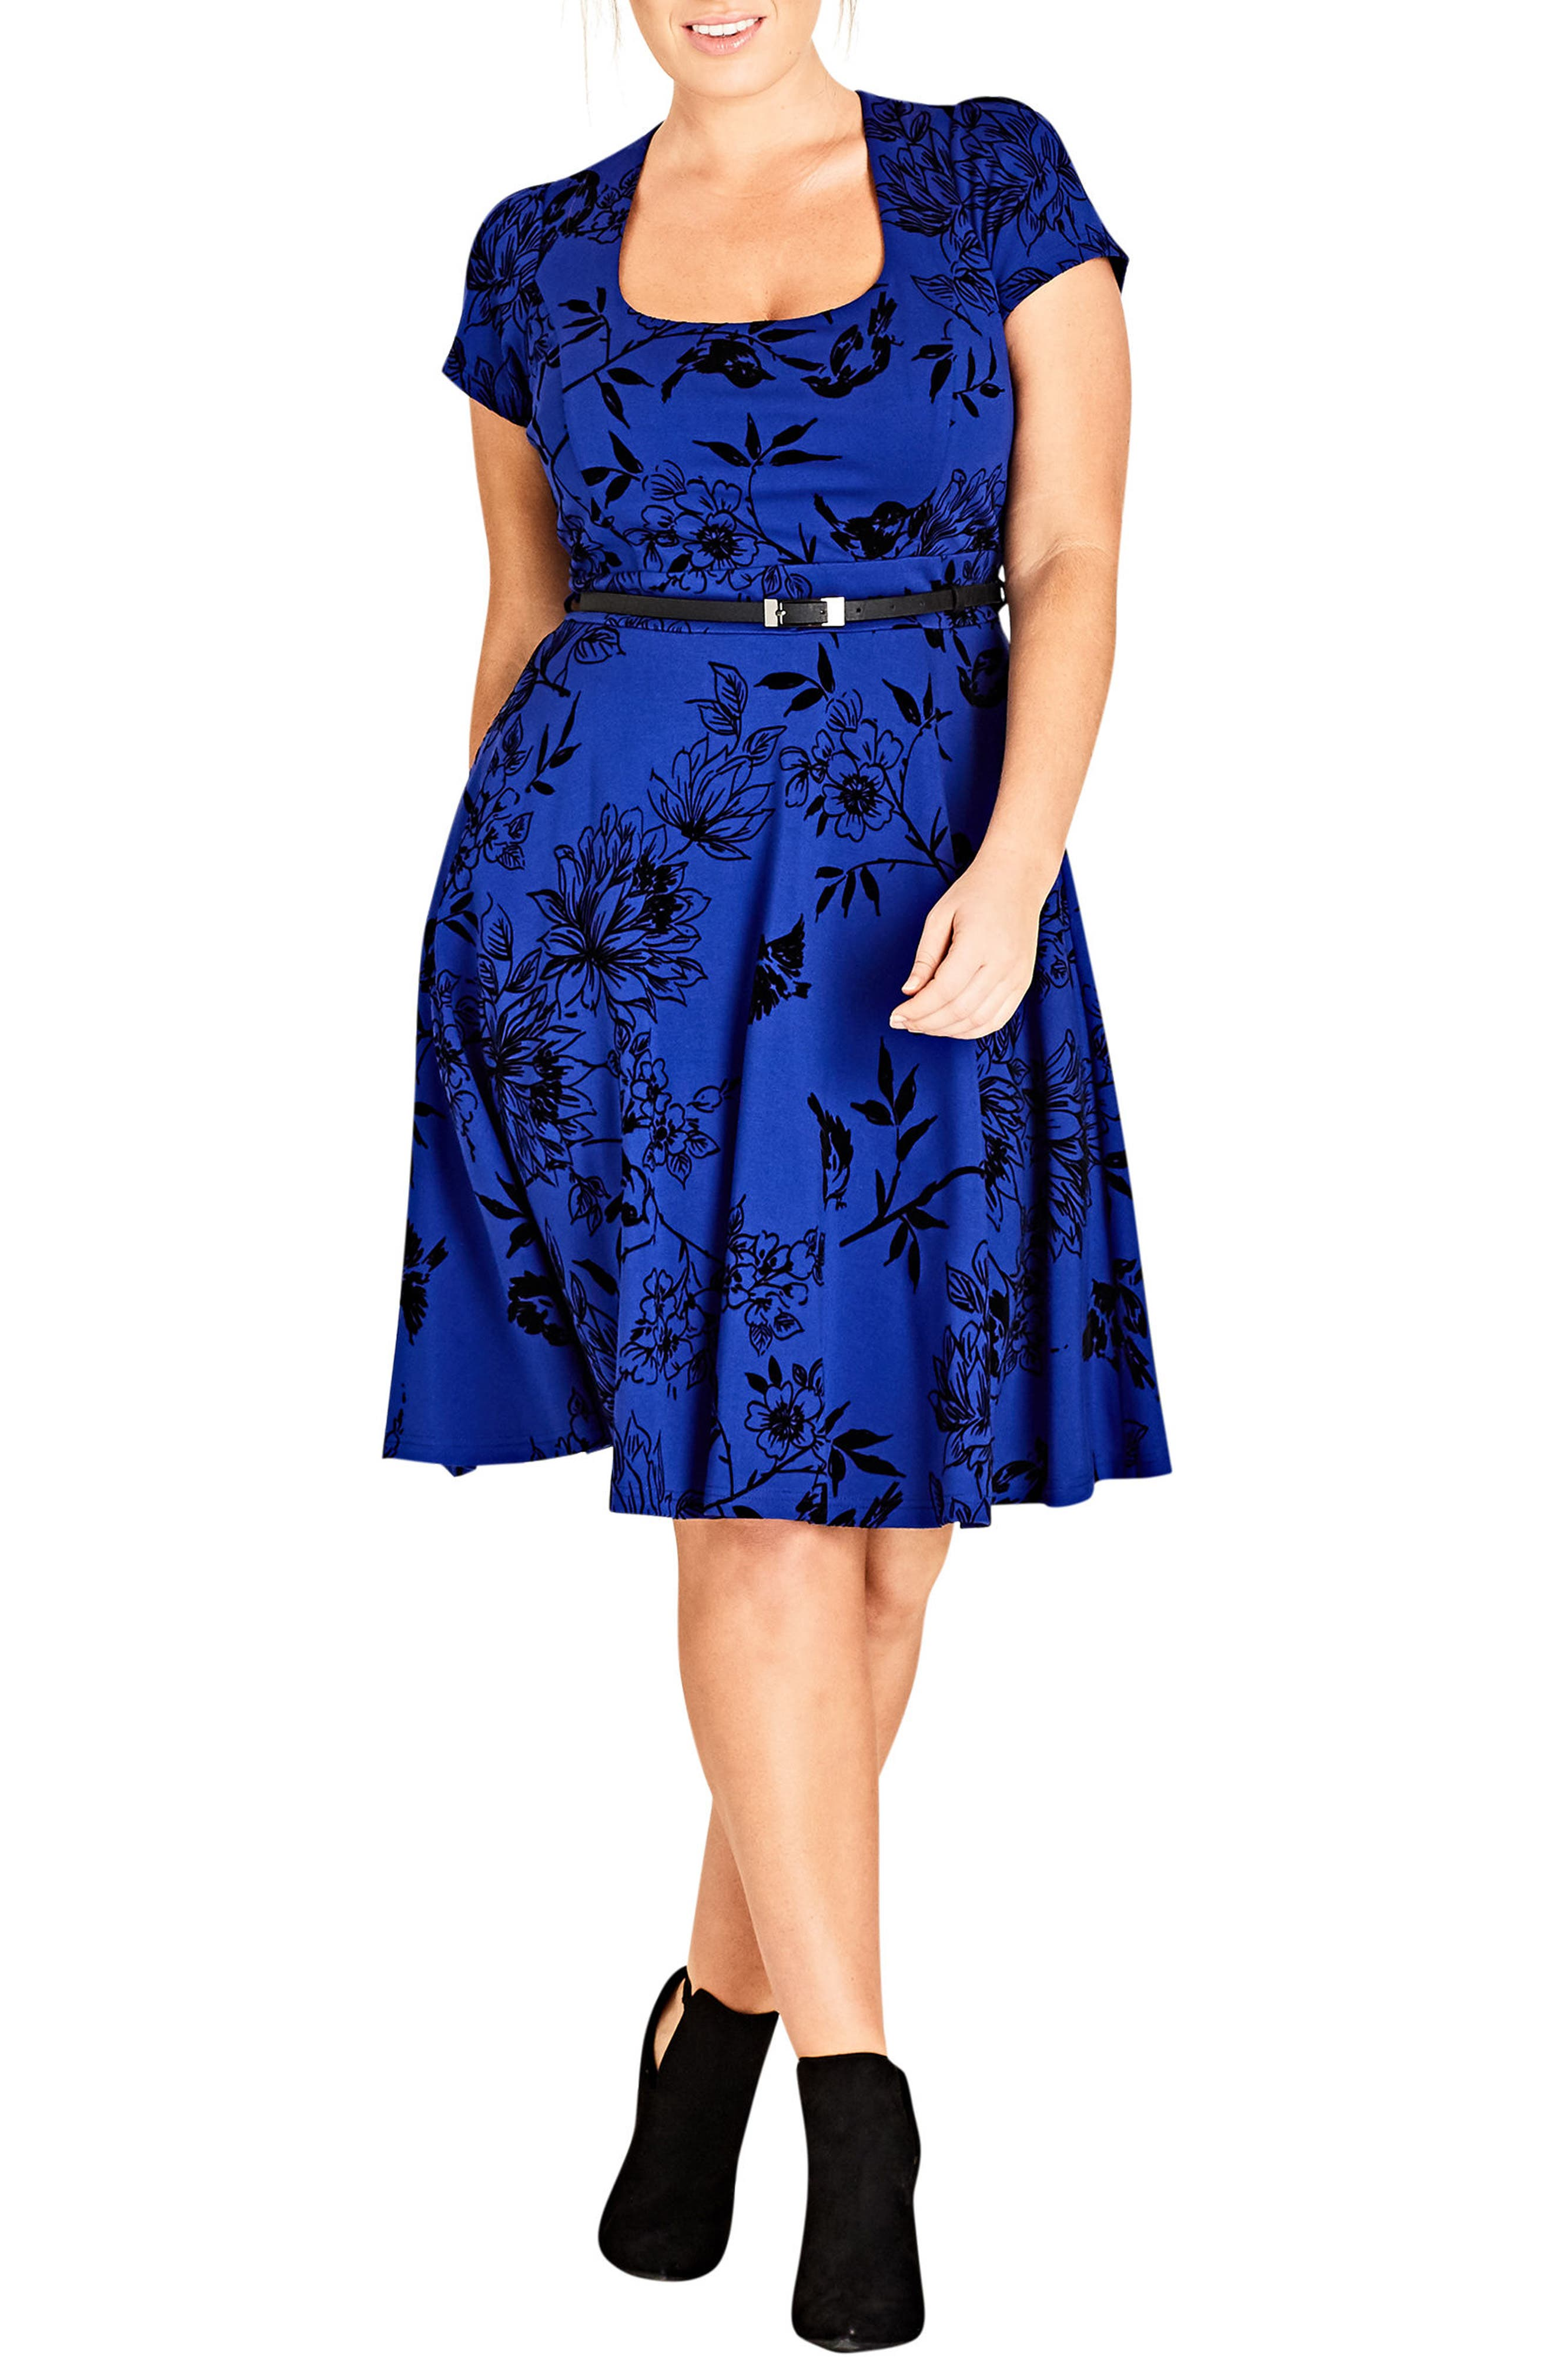 Birdy Flock Fit & Flare Dress,                             Main thumbnail 1, color,                             408